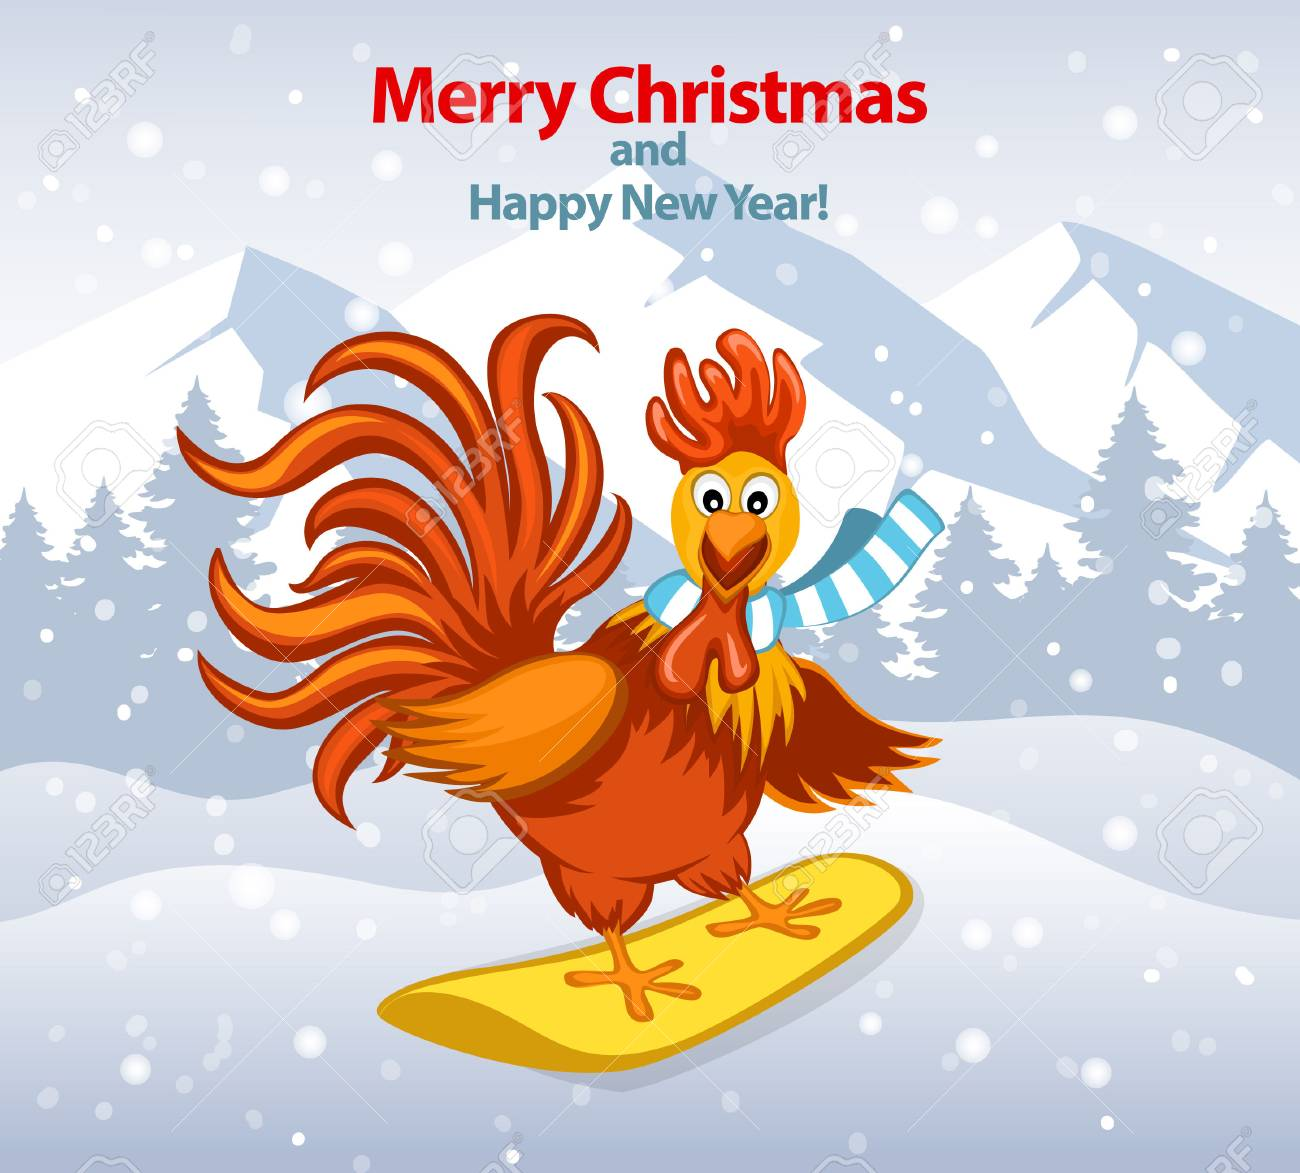 Merry Christmas And Happy New Year Greeting Card With Cute Funny